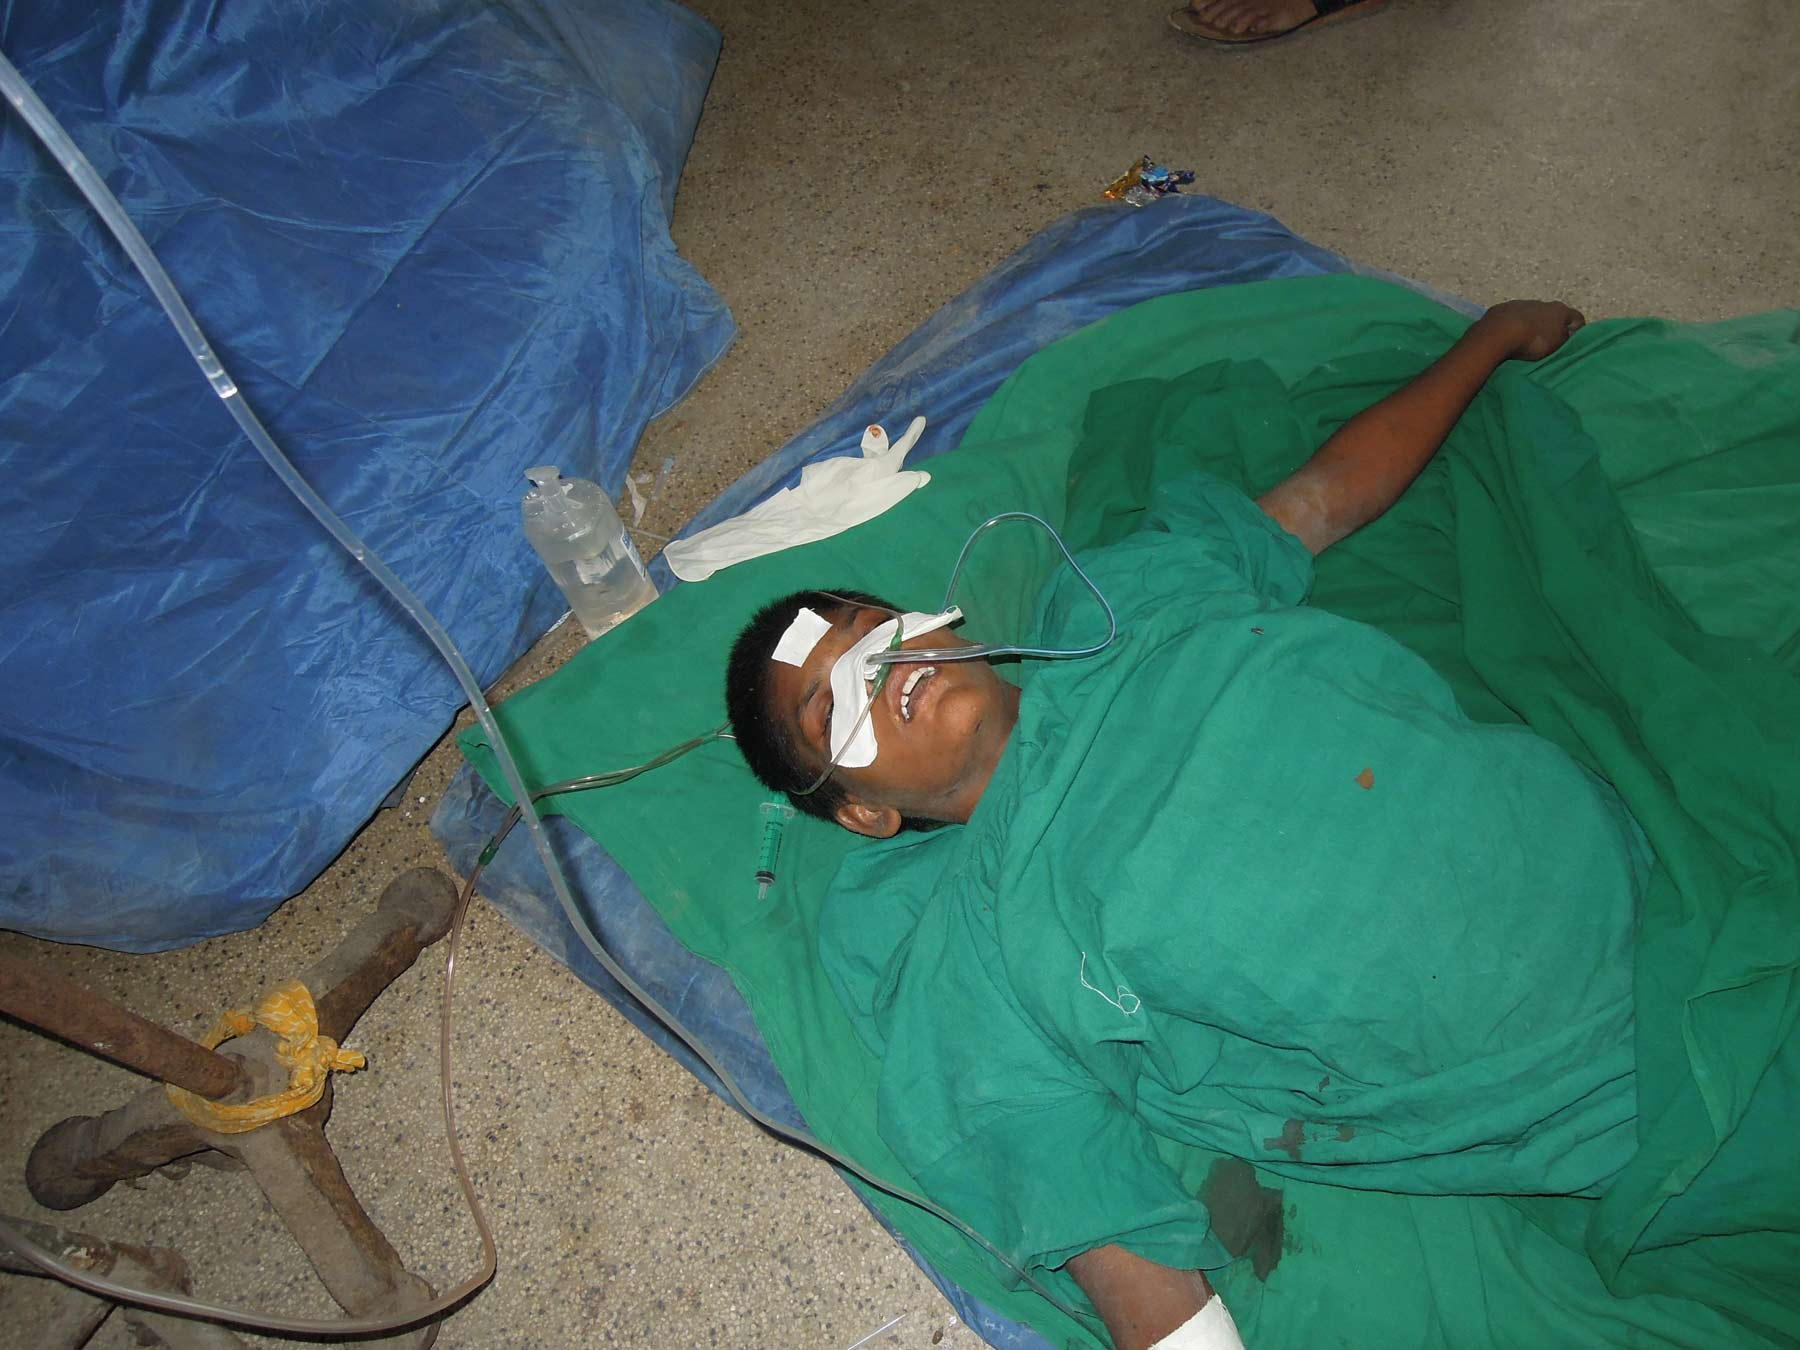 Unidentified patient receiving iv fluids on the floor of the hospital